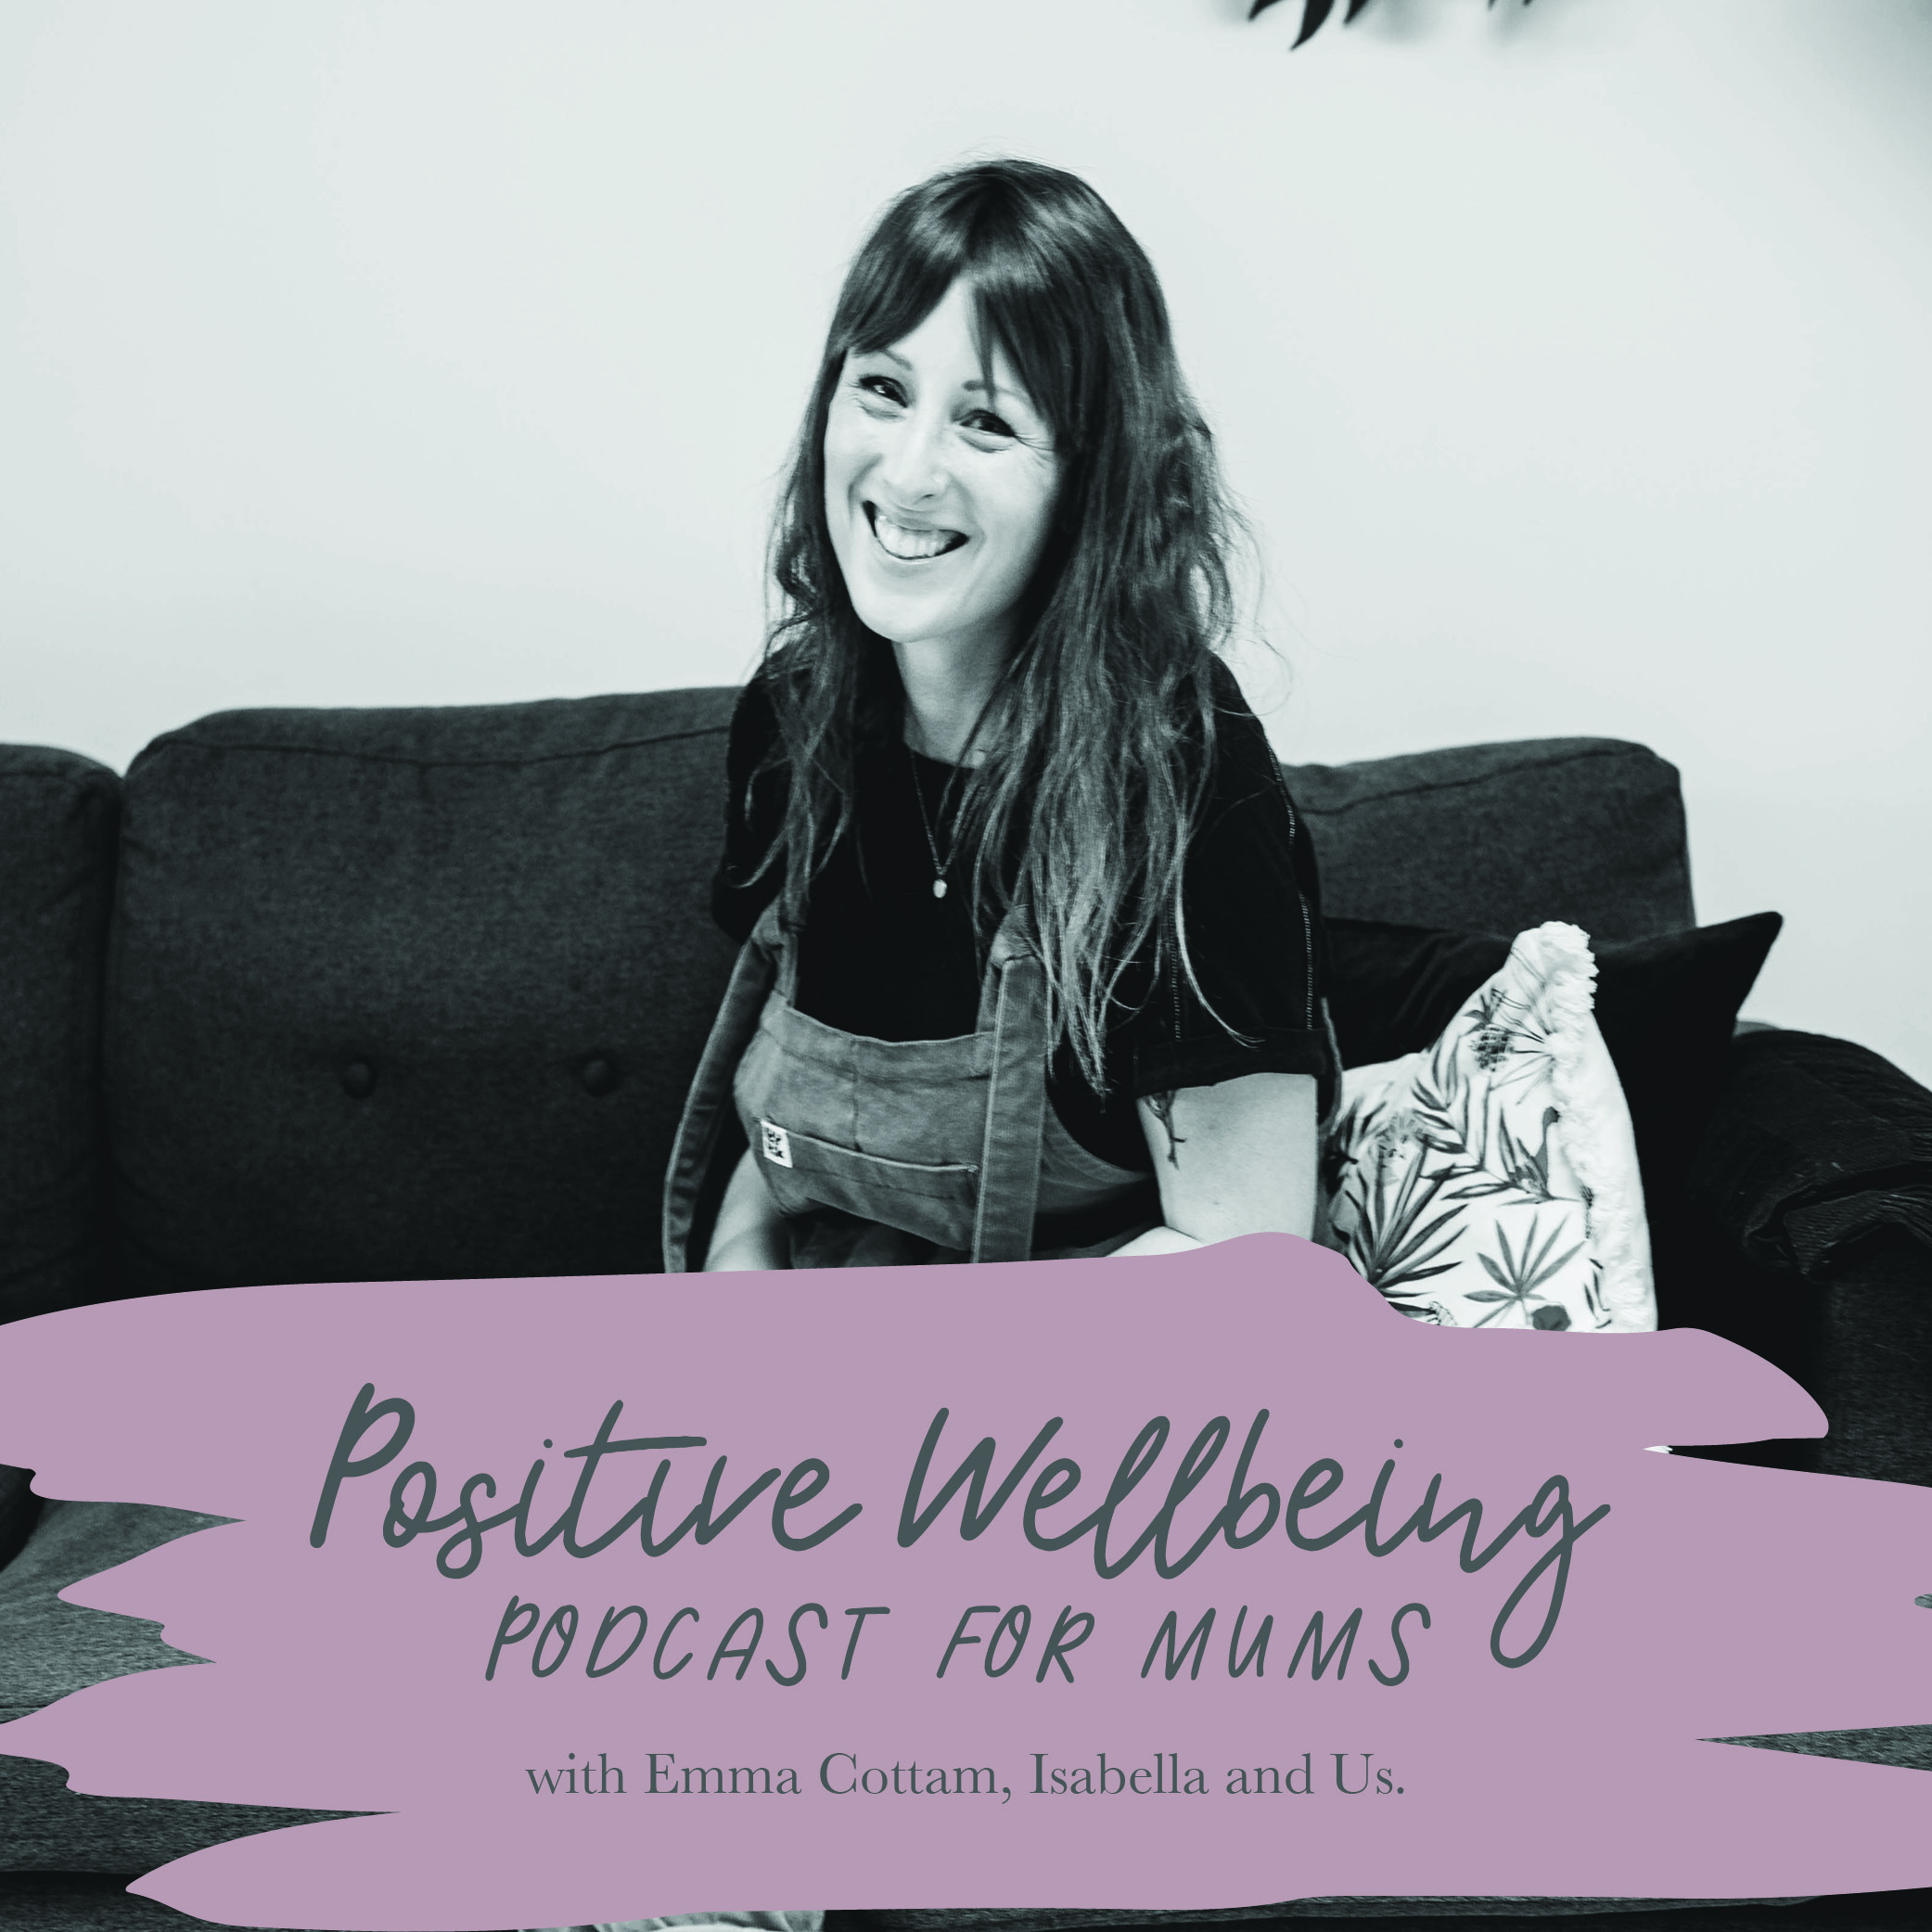 Positive Wellbeing Podcast for Mums show art